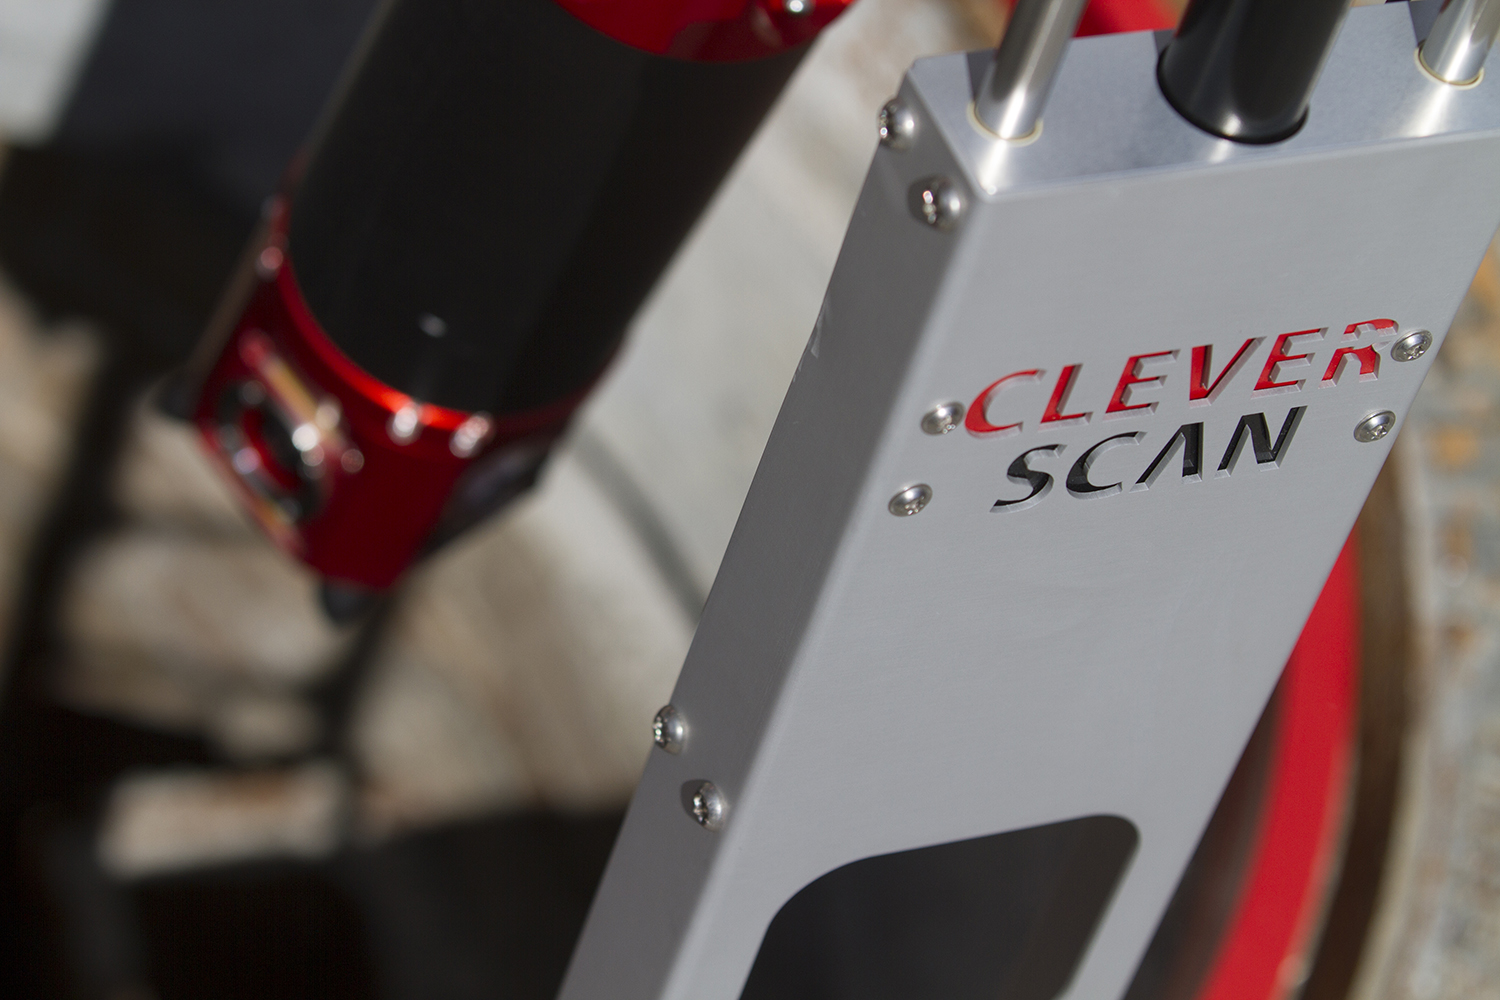 CleverScan is lightweight, mobile and easy to operate